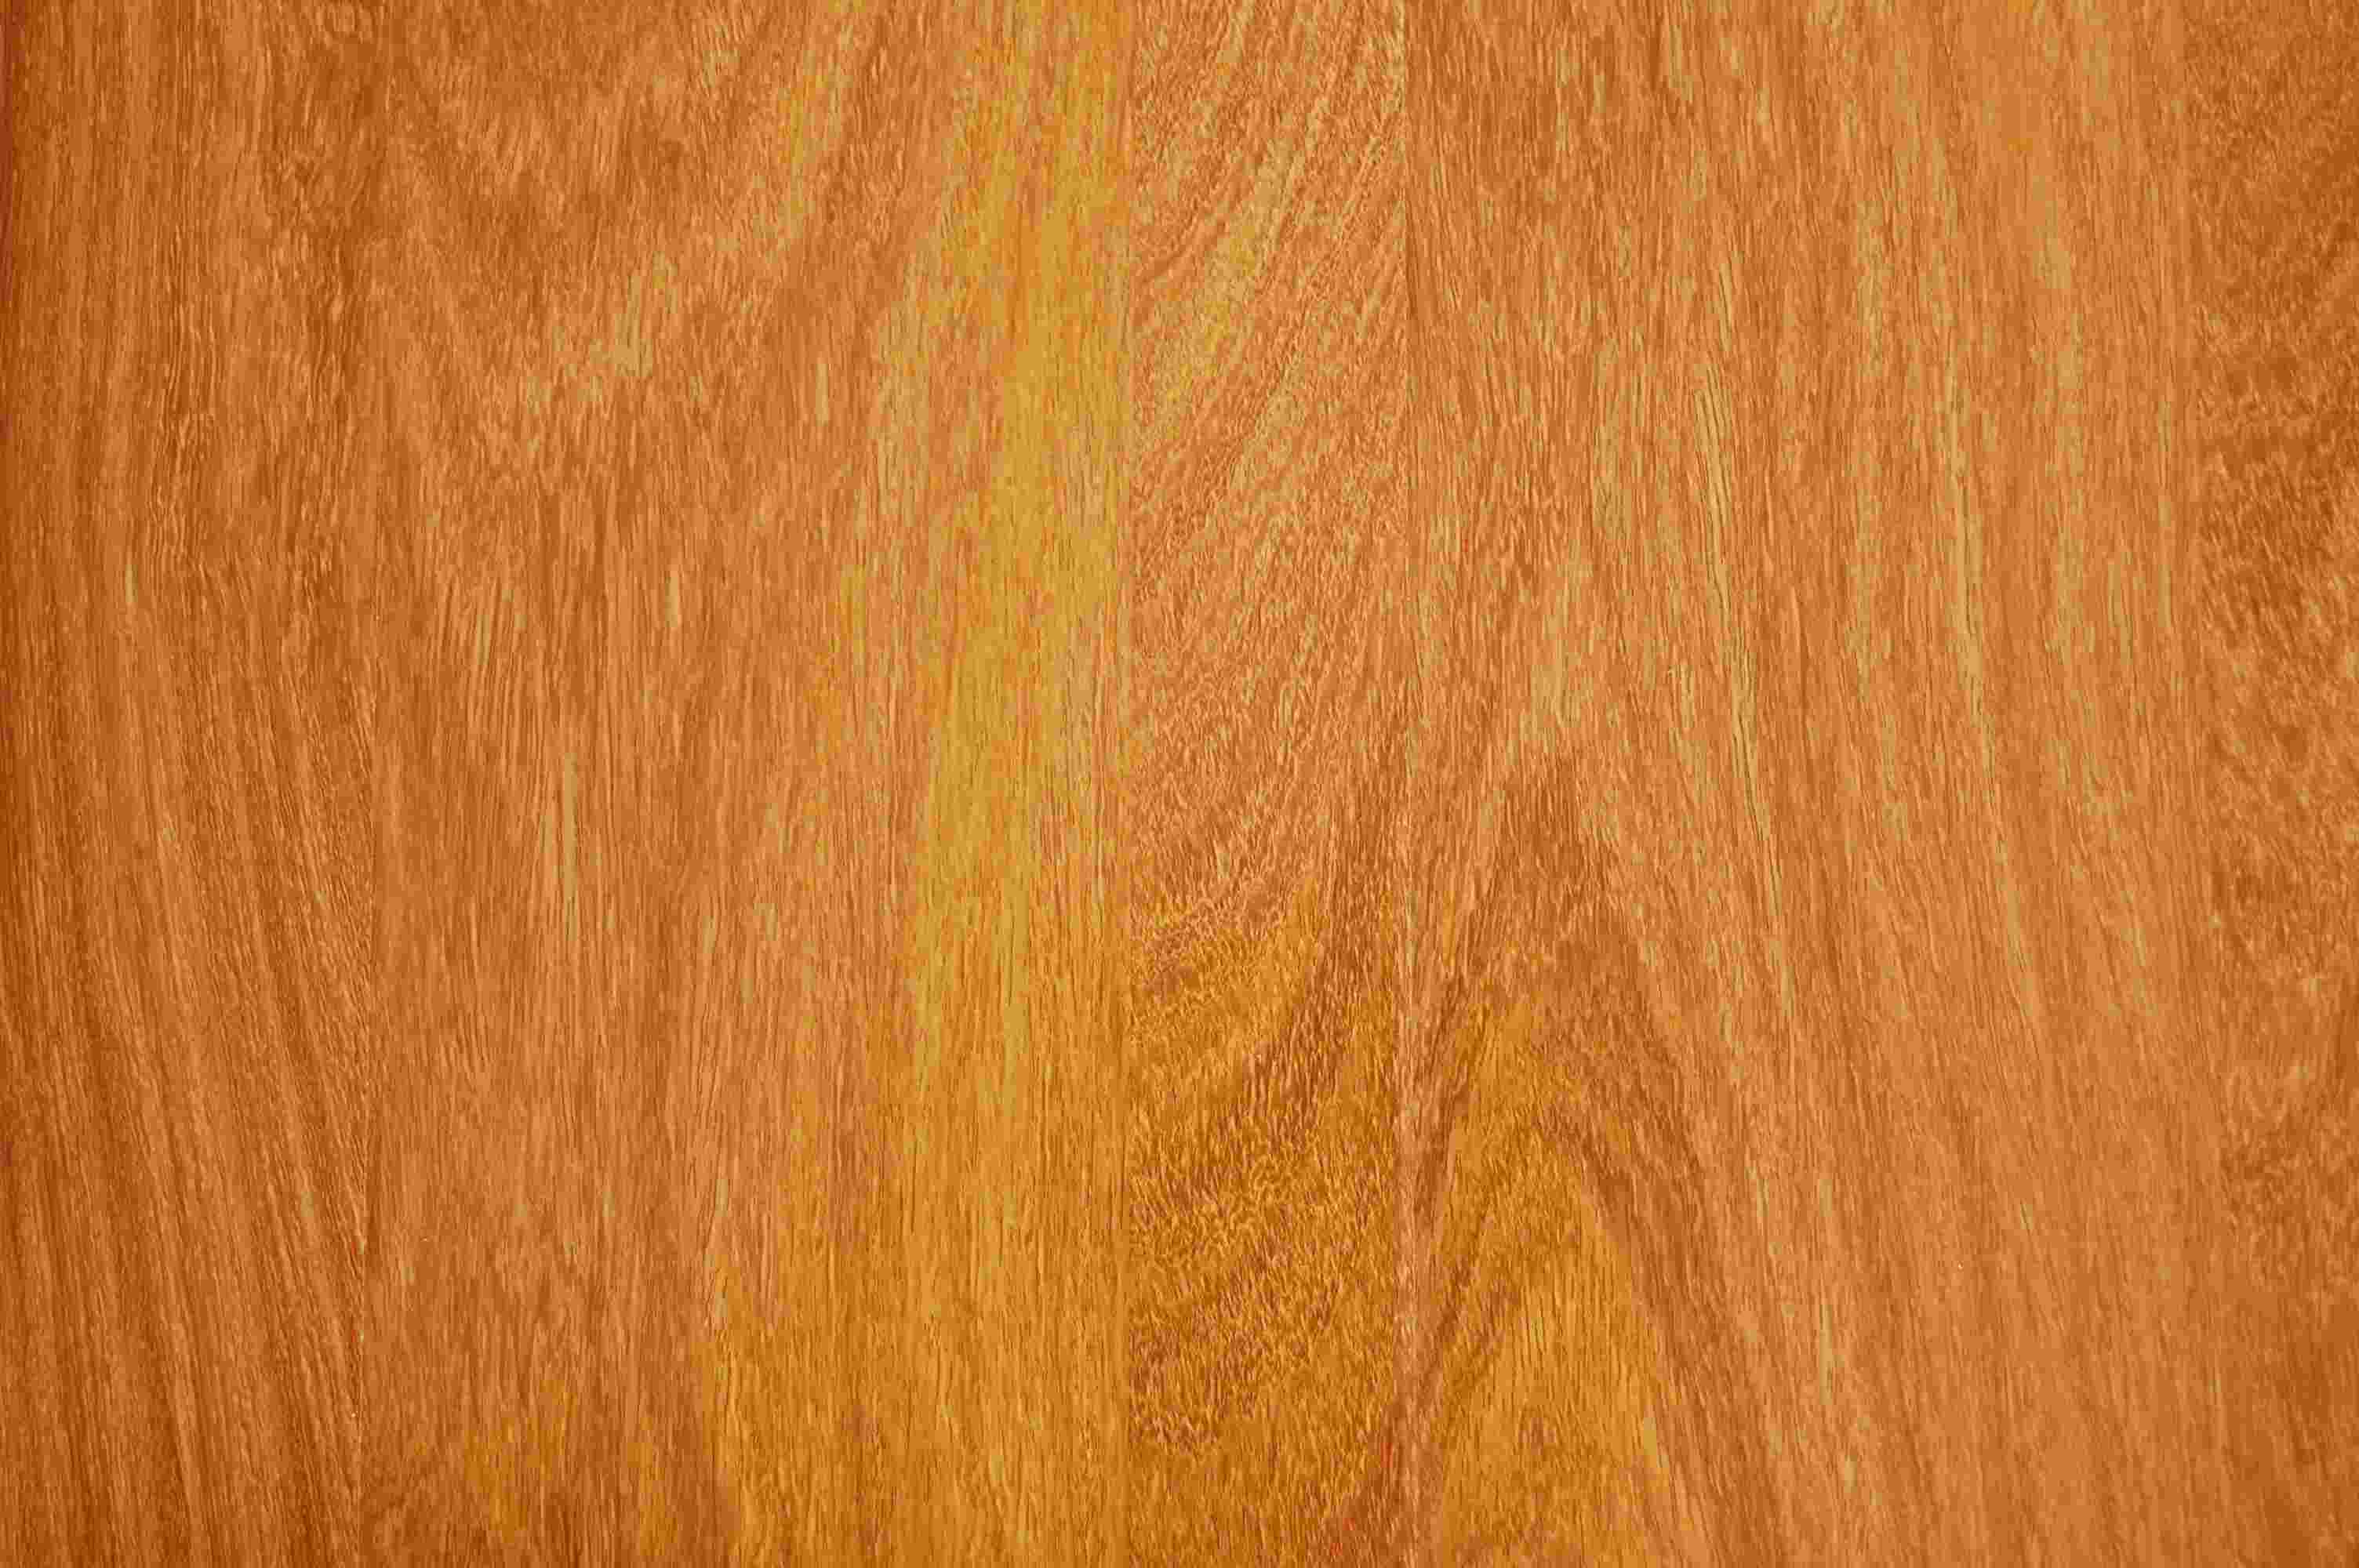 Wood image 400 for Laminated wood